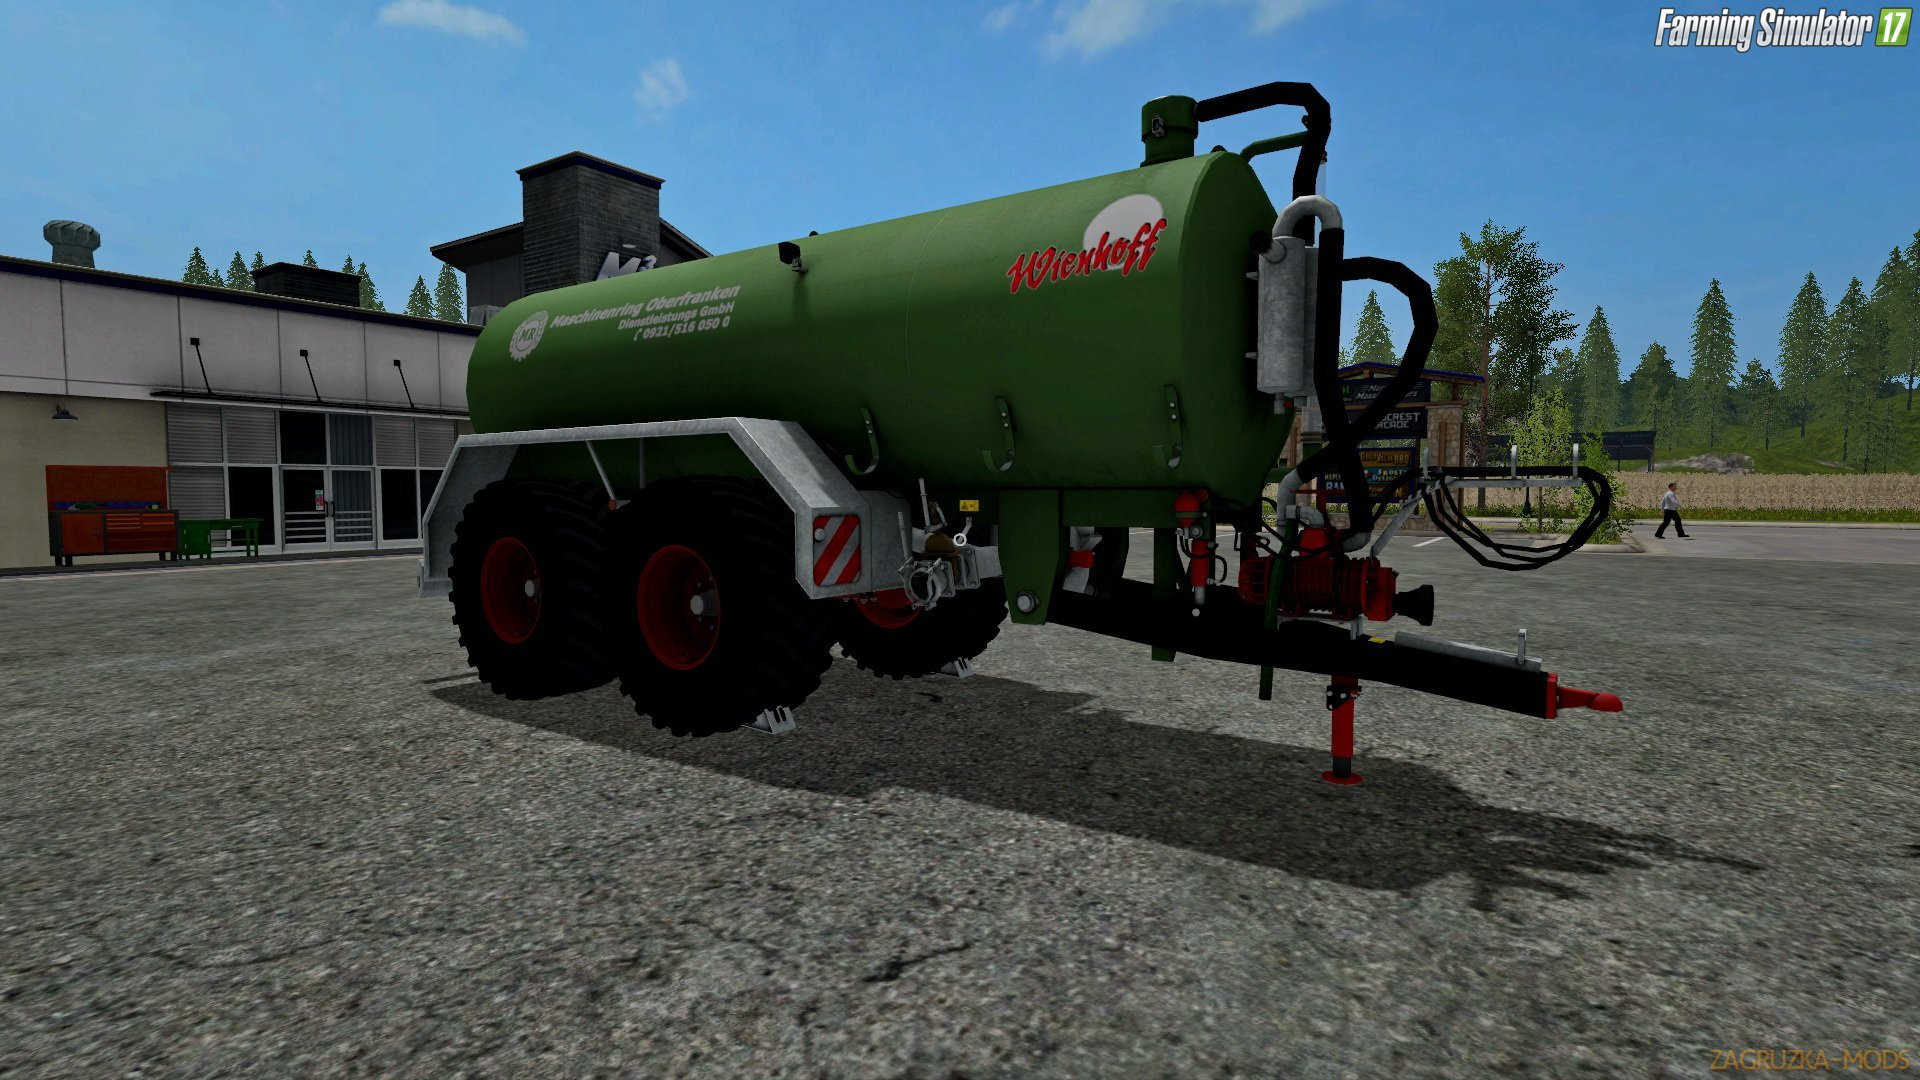 Trailer Wienhoff 20200 VTW v1.0 for FS 17